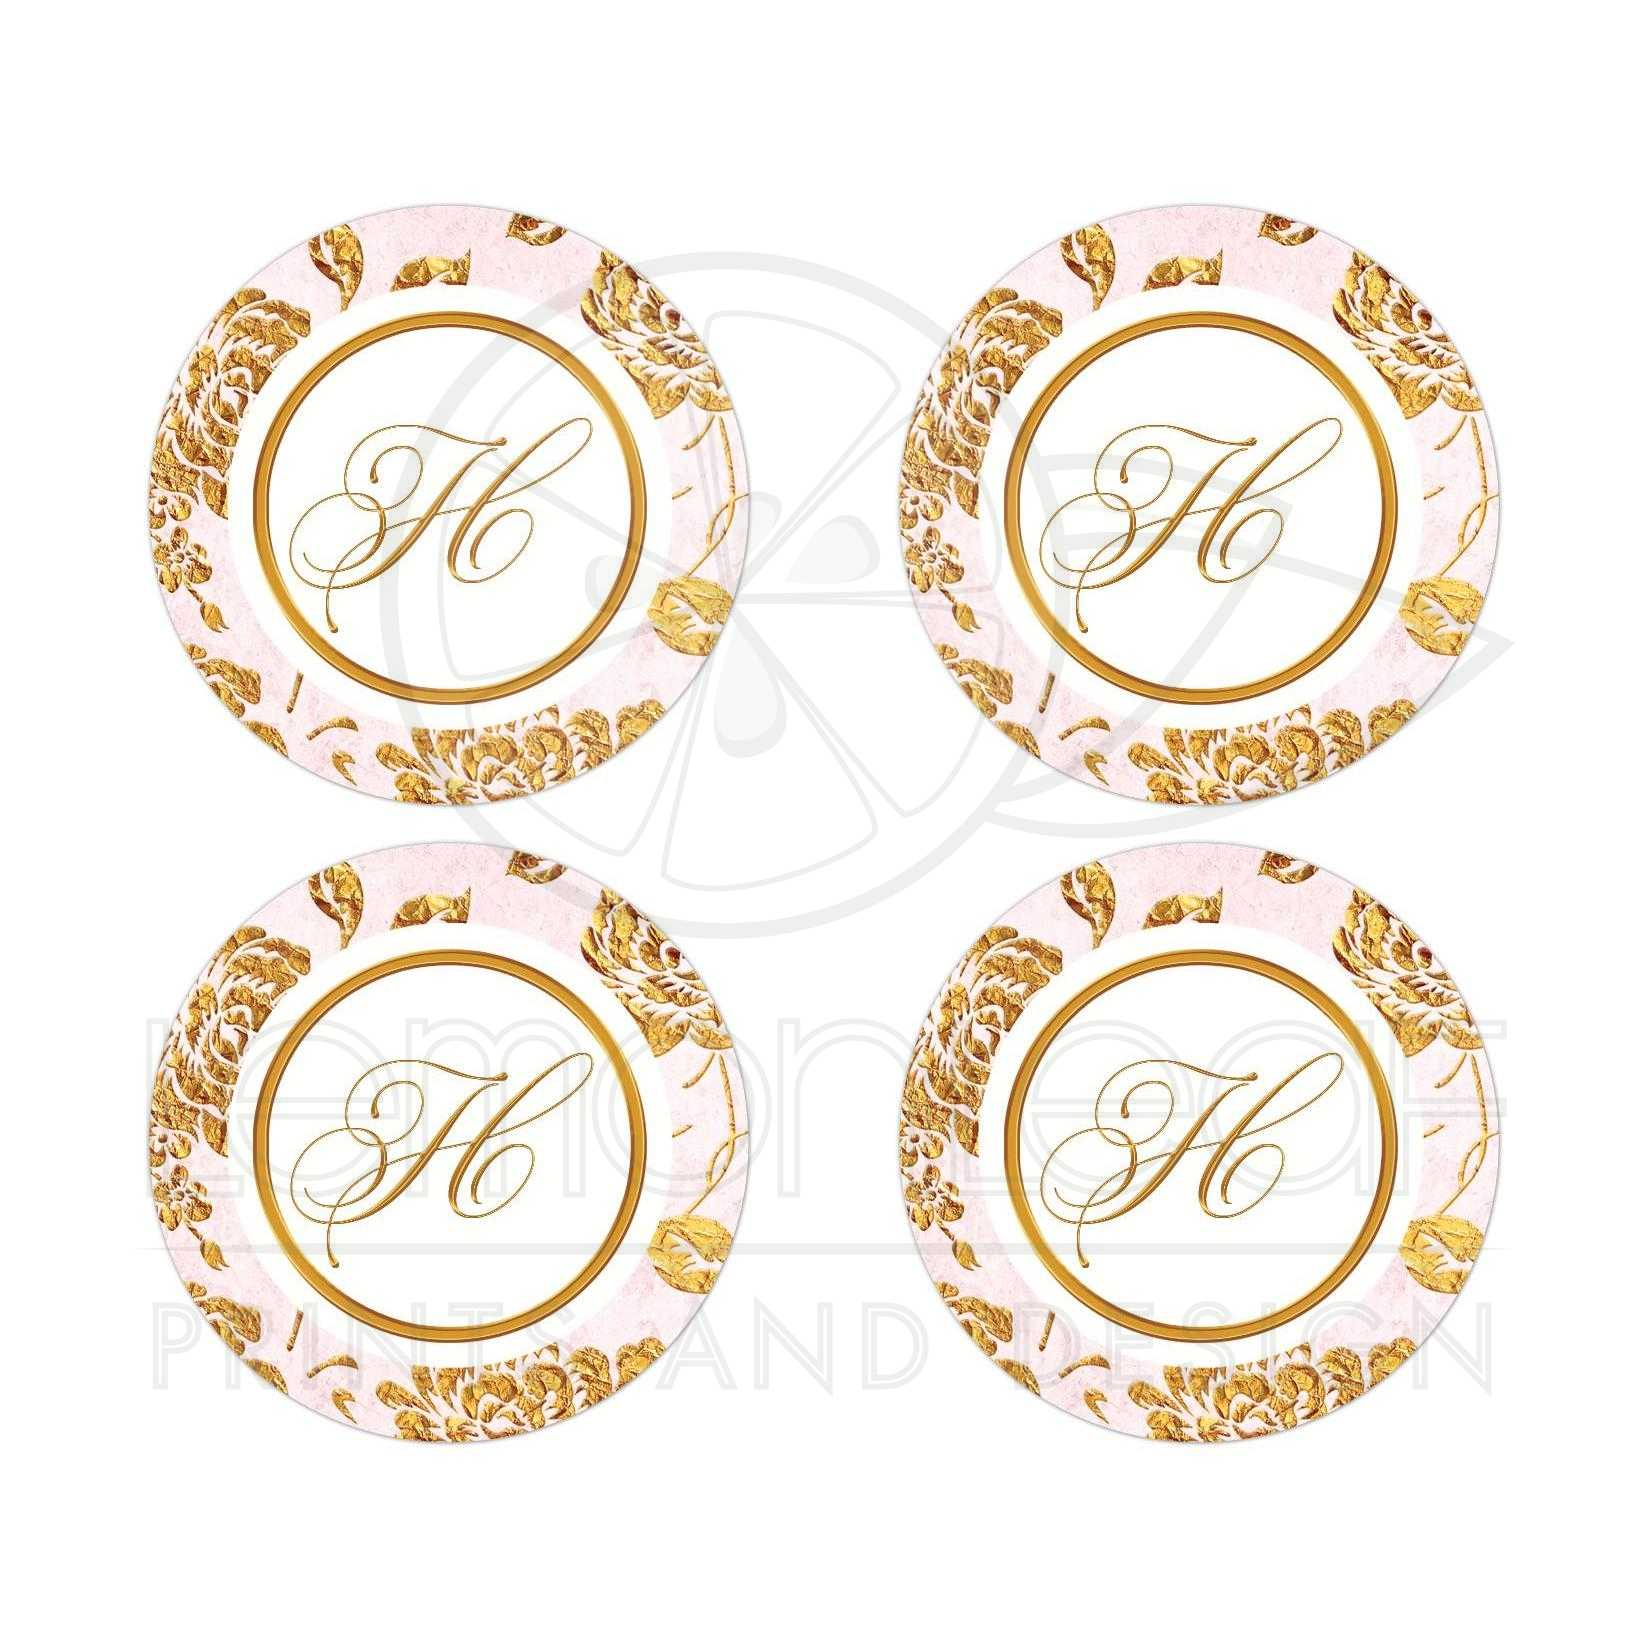 Vintage Blush Pink Ivory And Gold Roses Or Peony Fl Wedding Stickers Envelope Seals